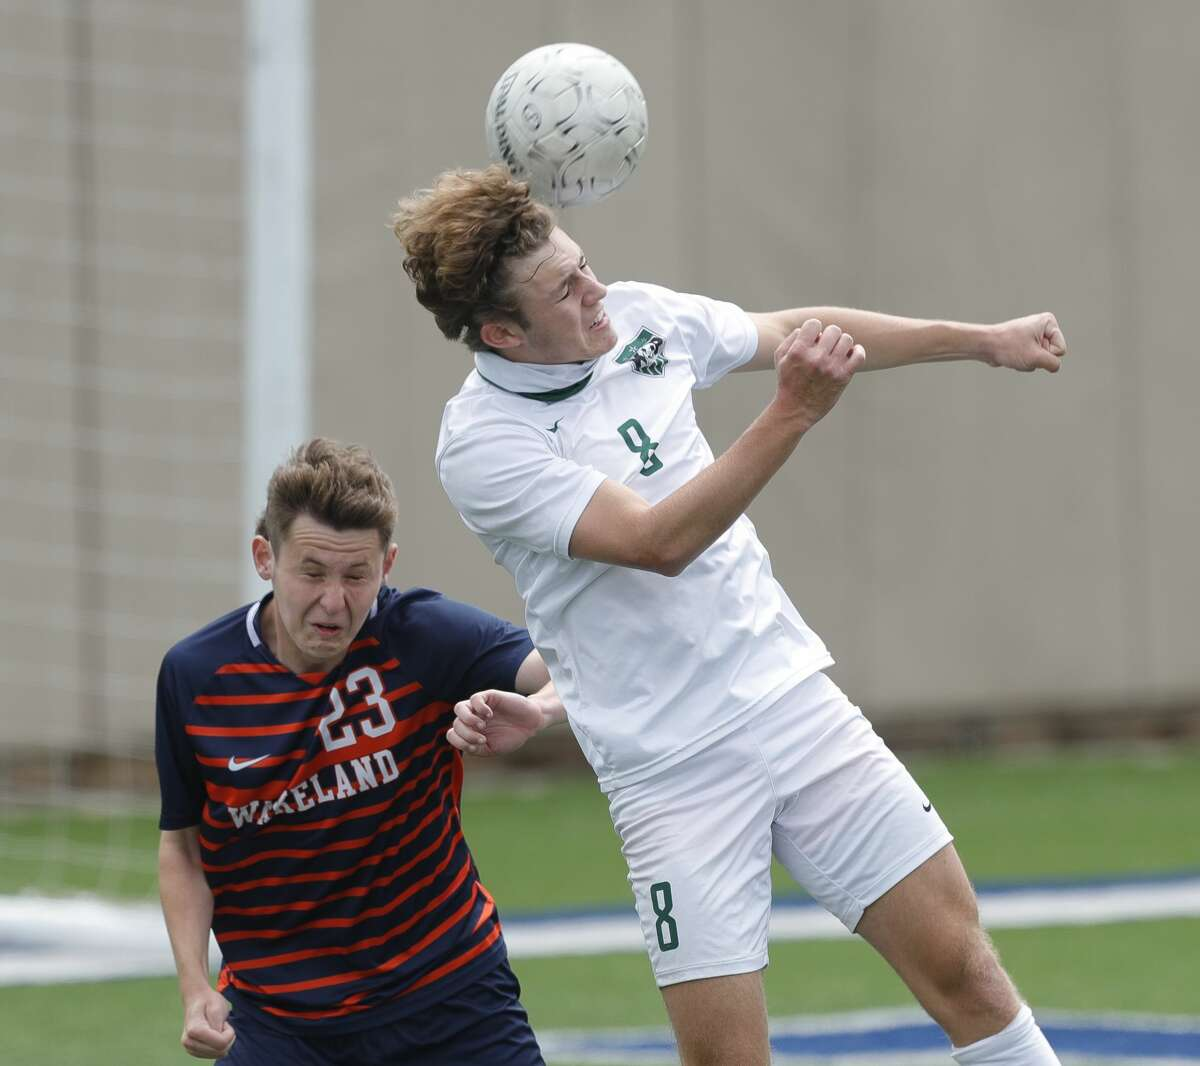 Kingwood Park forward Nathan Jimerson (8) heads the ball against Frisco Wakeland defender Jacob Rulon (23) in the first period of the UIL Class 5A boys soccer championship, Saturday, April 17, 2021, in Georgetown.